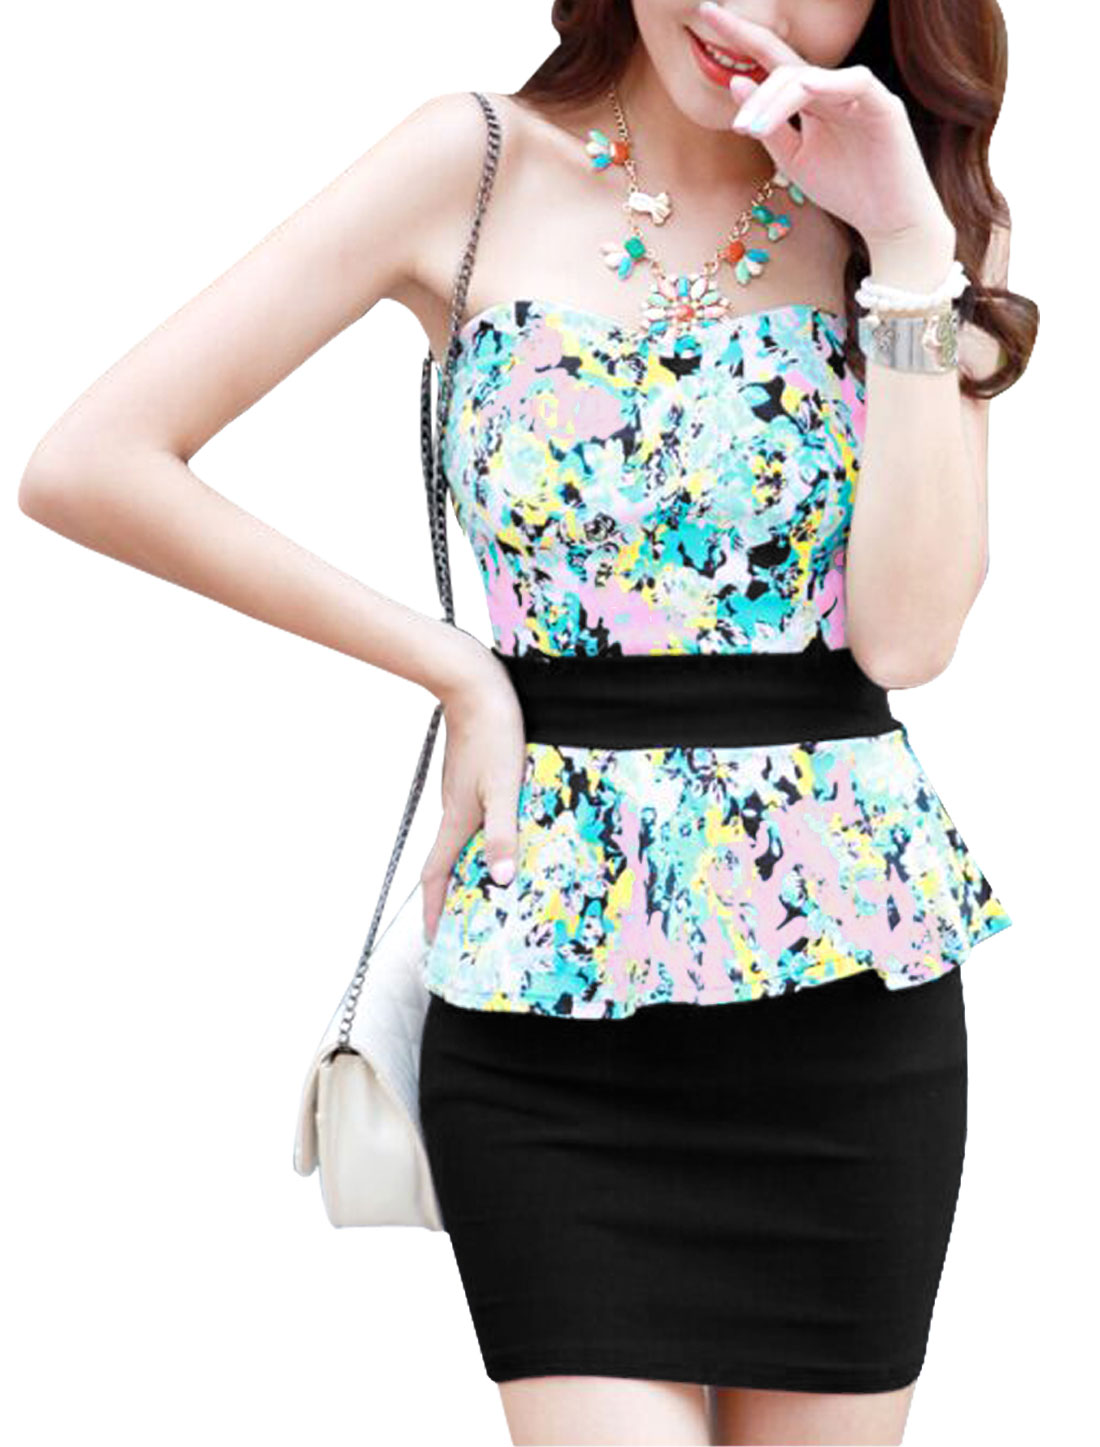 Lady Zip Fly Back Floral Prints Cut Out Back Peplum Dress Black Sea Blue XS